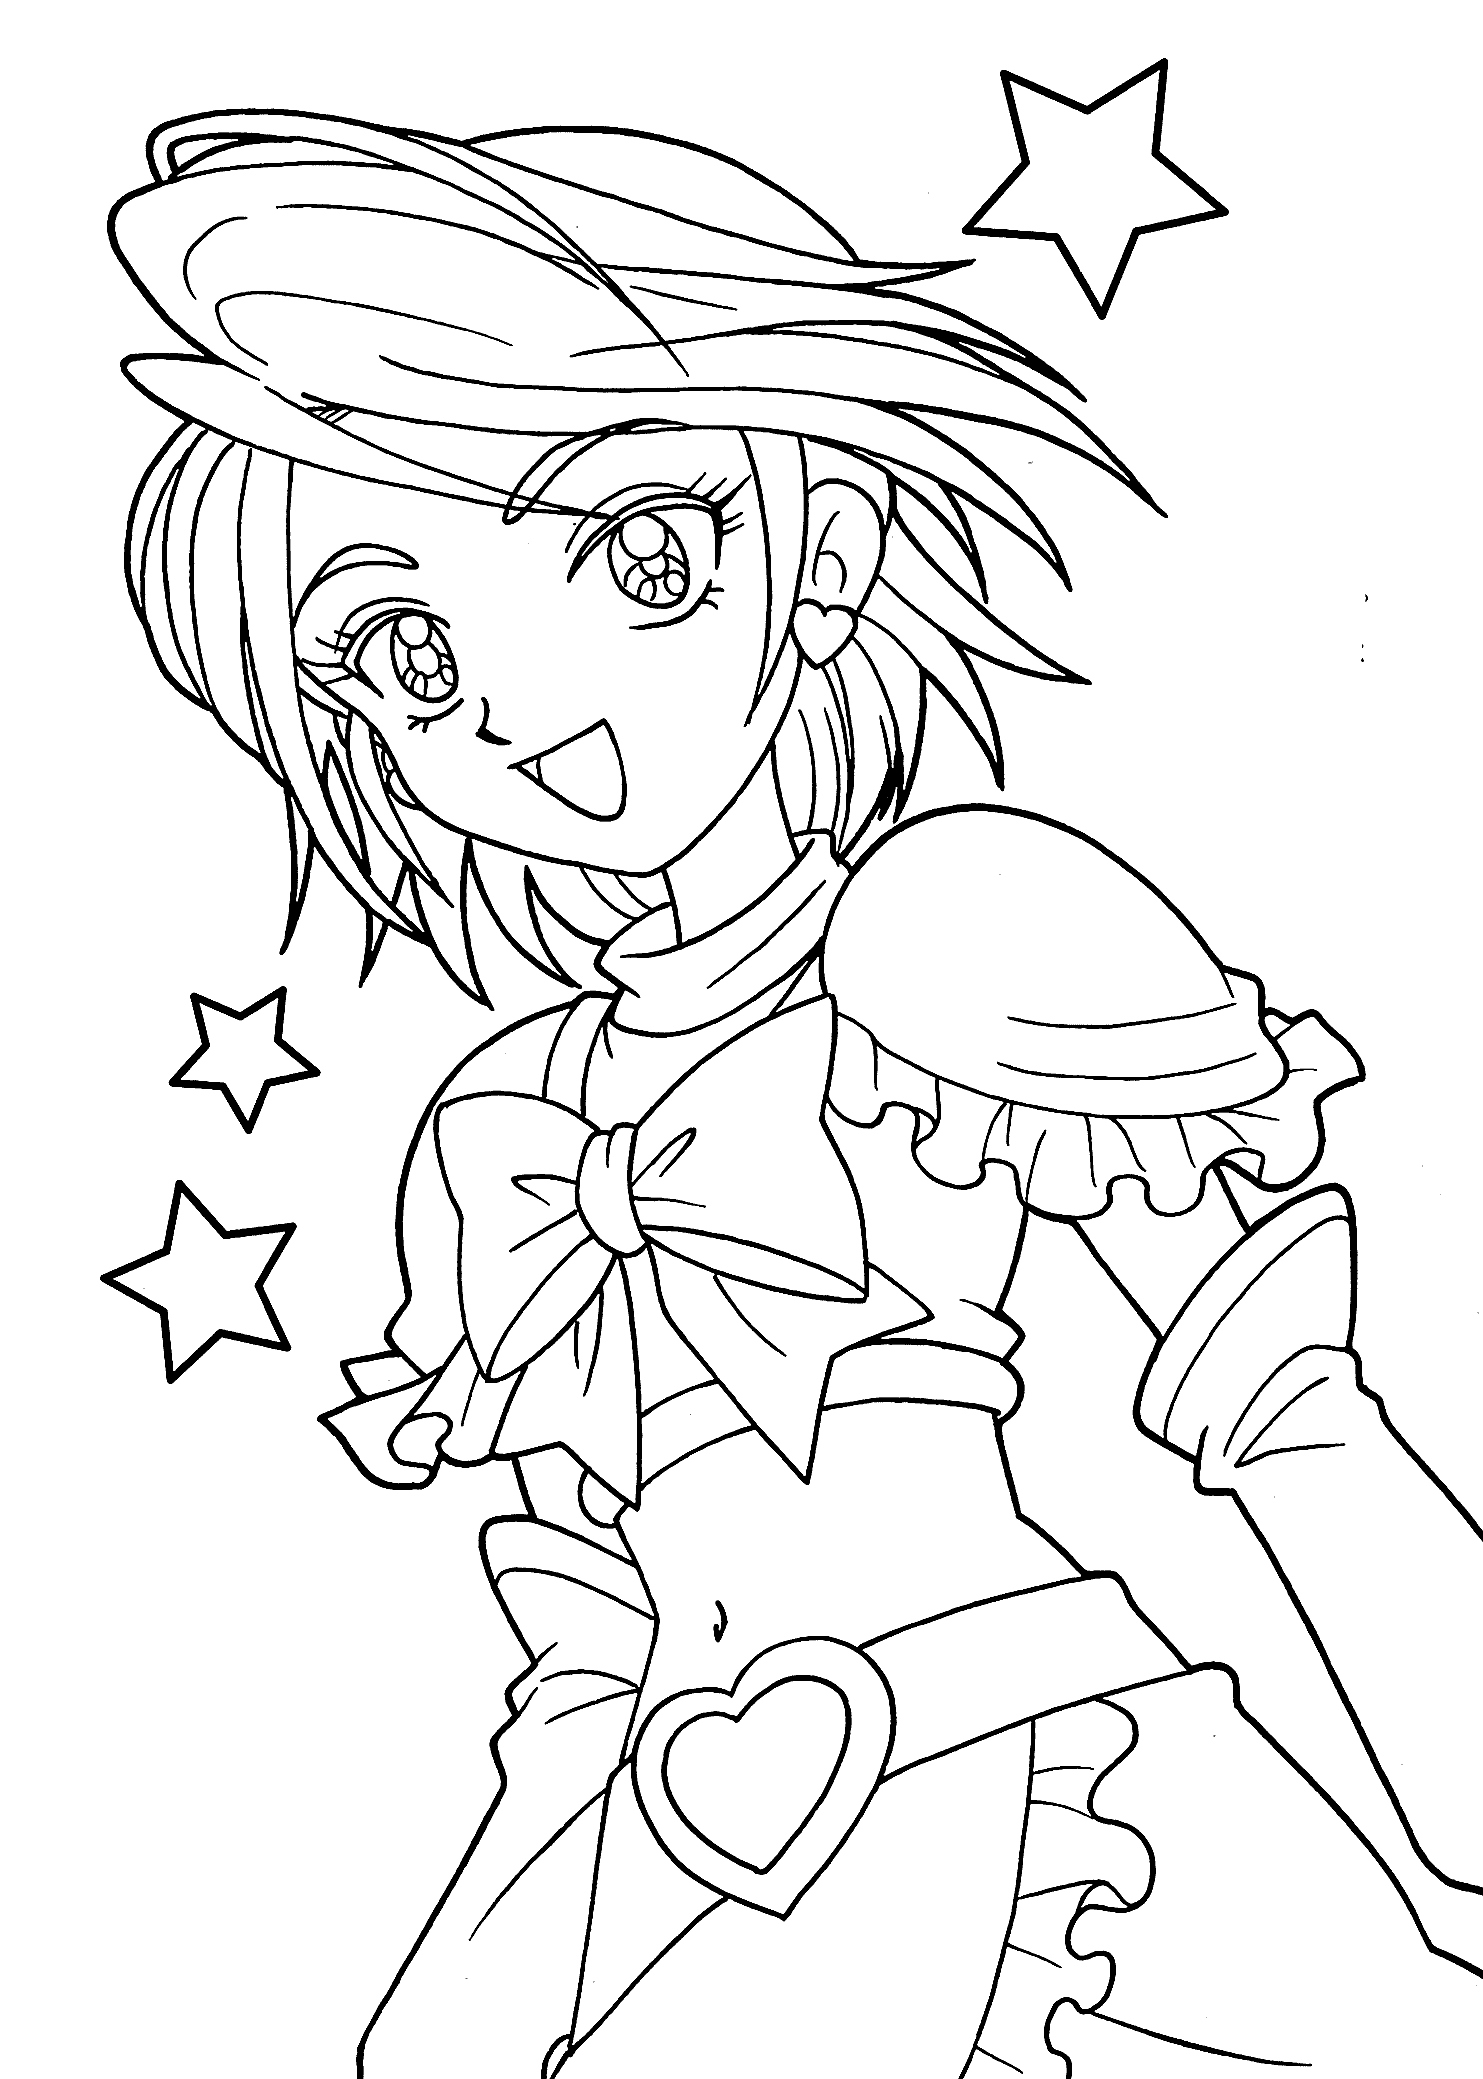 1483x2079 Printable Coloring Pages For Girls Awesome Best Of Anime Girl